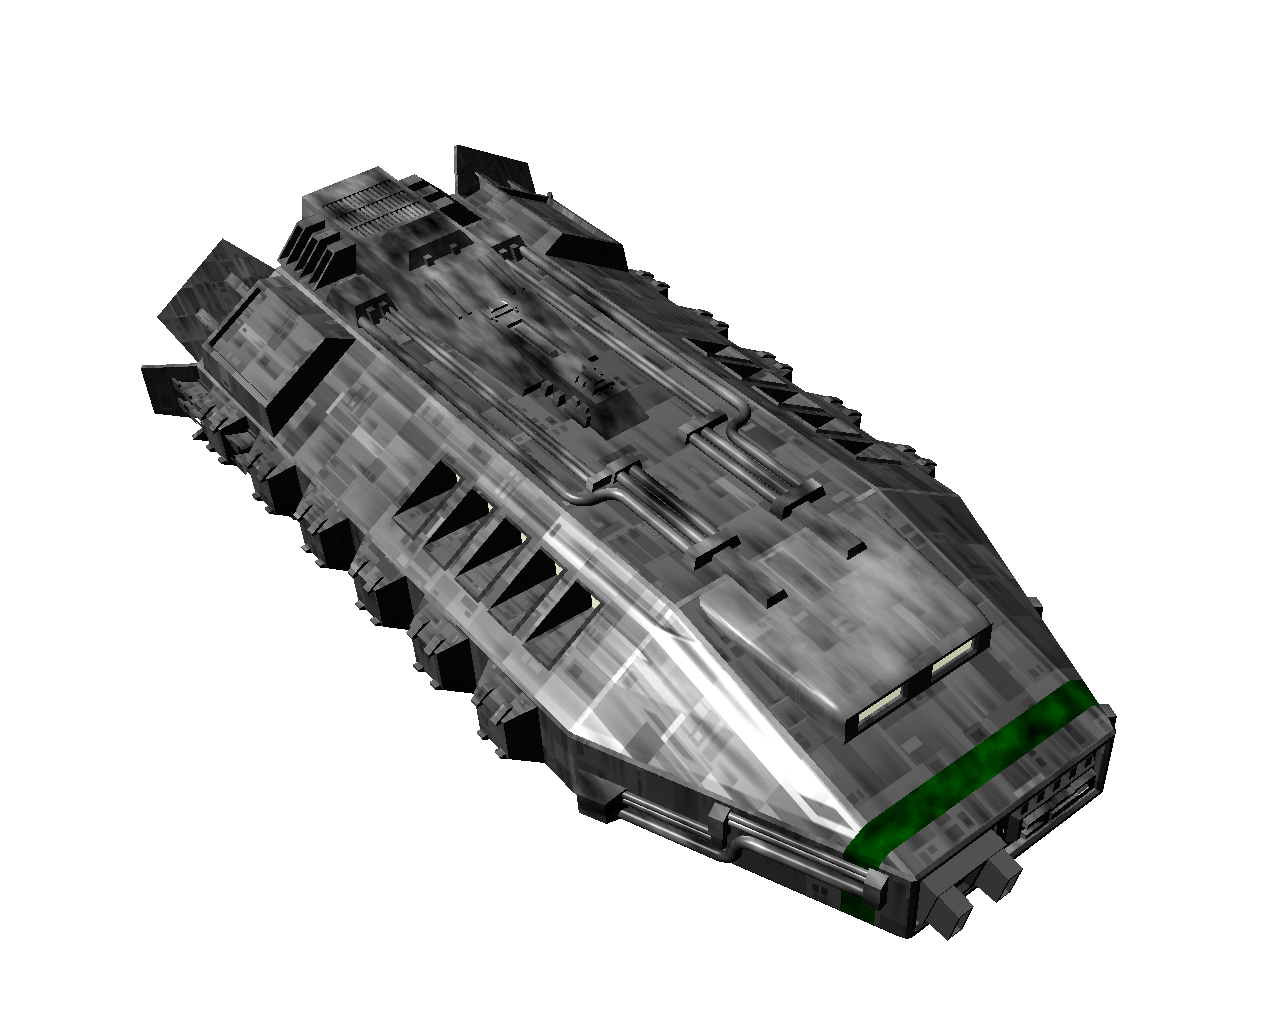 Earth Alliance/Earthforce Crew Shuttle